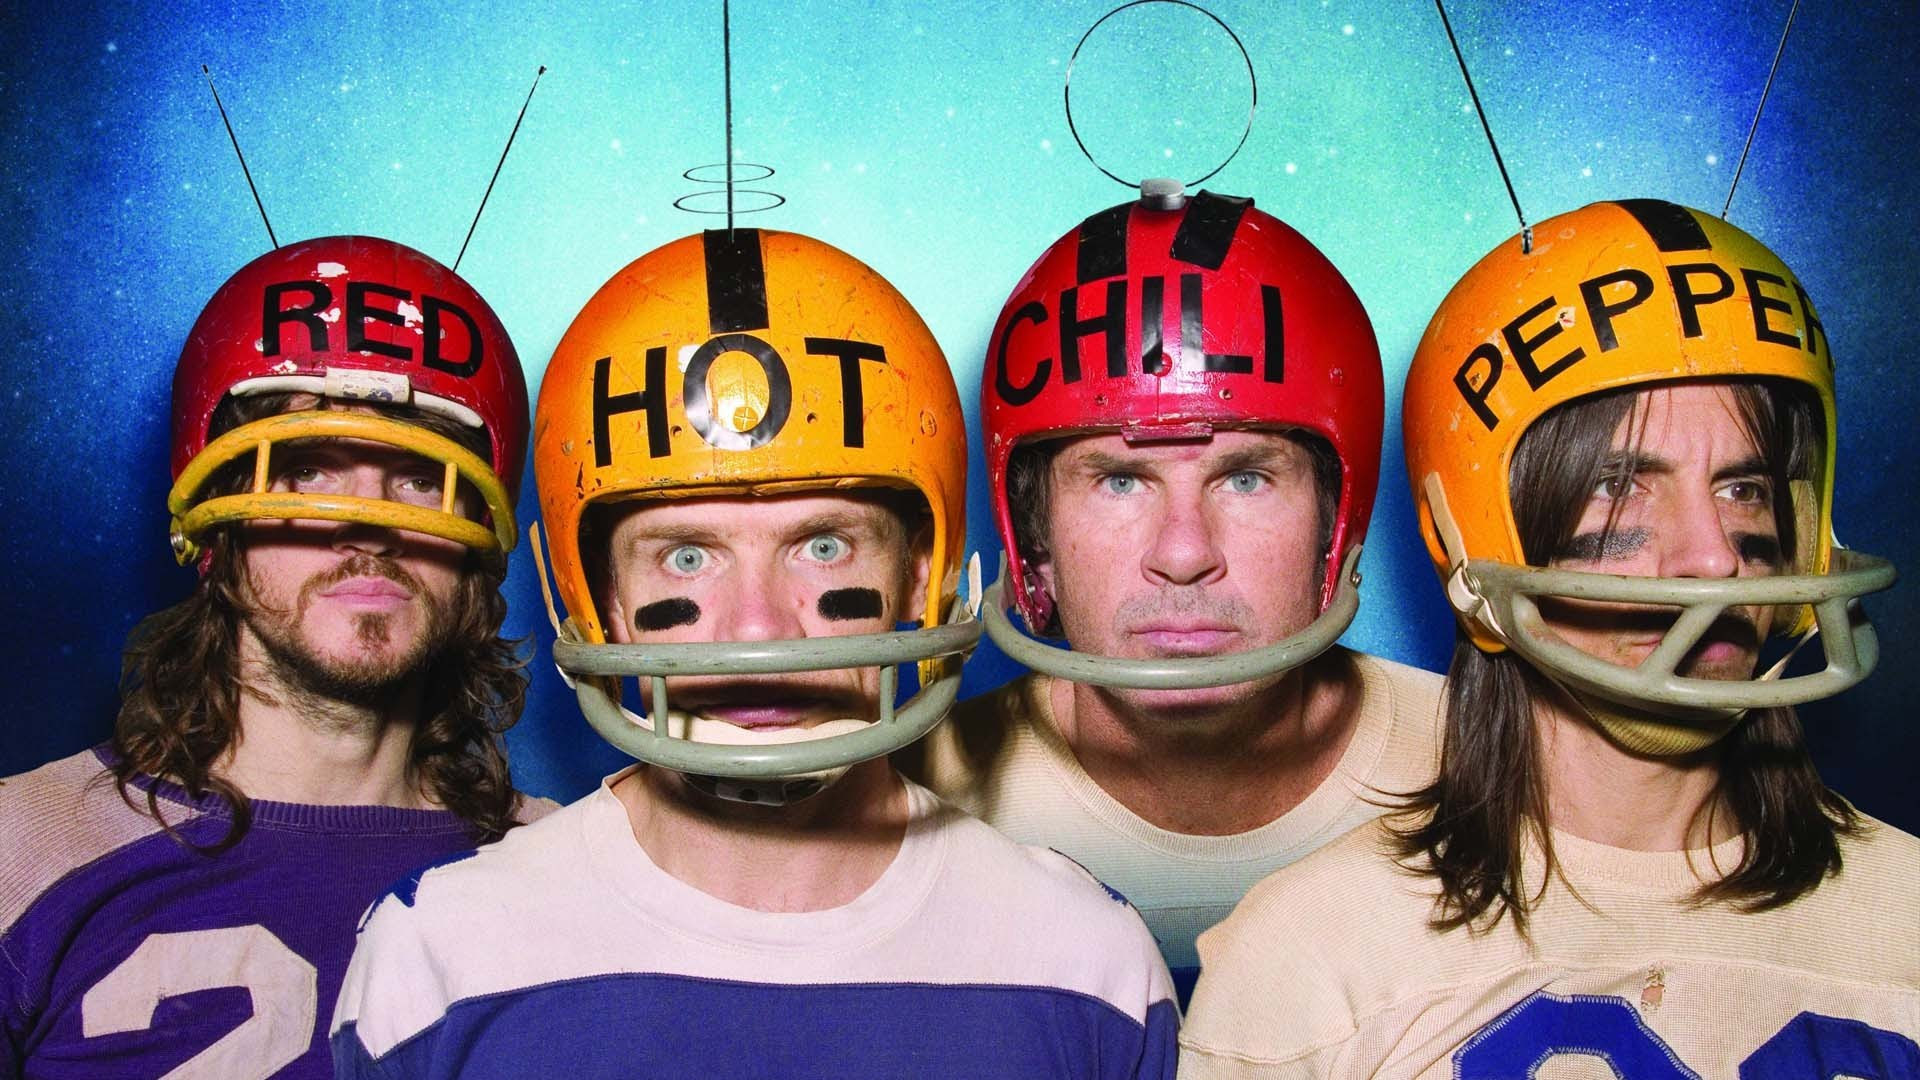 Awesome Red Hot Chili Peppers Wallpaper 1920x1080 28636